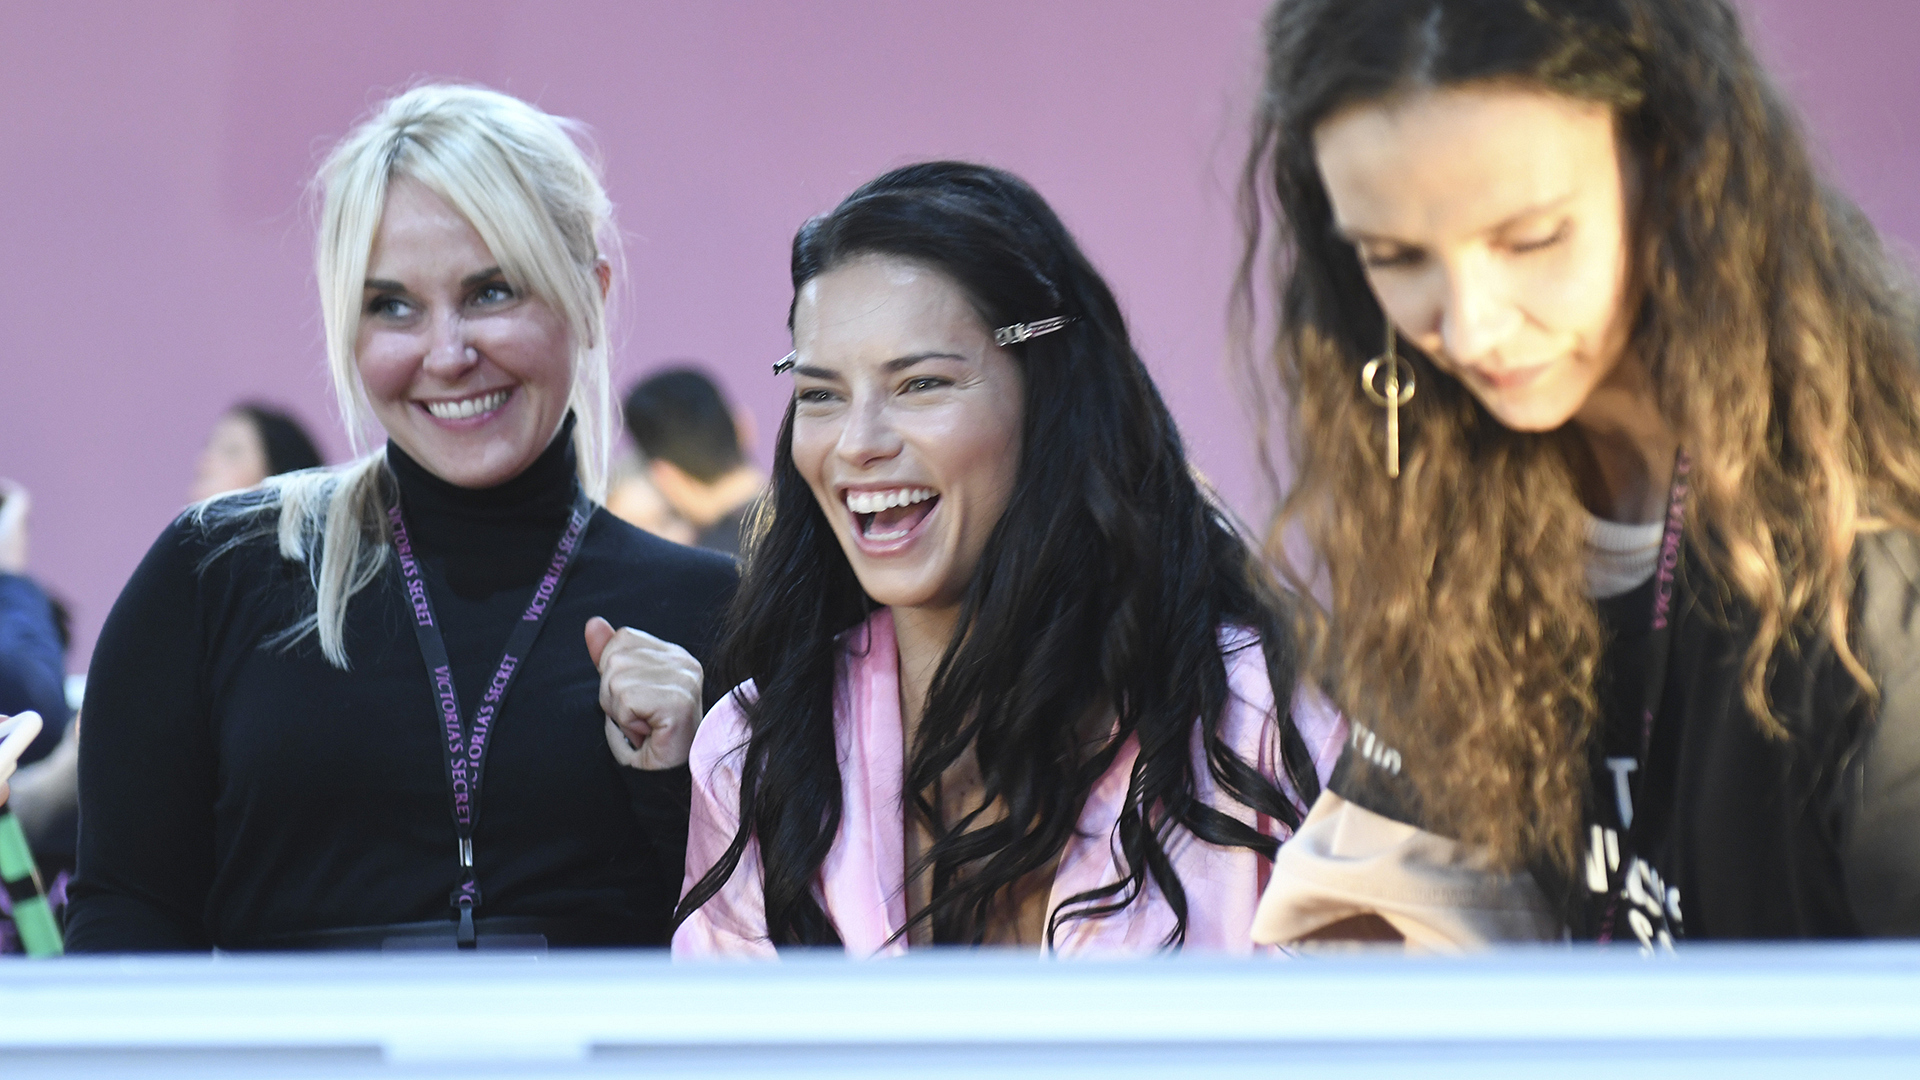 Angel Adriana Lima jokes with the hair and makeup artists.